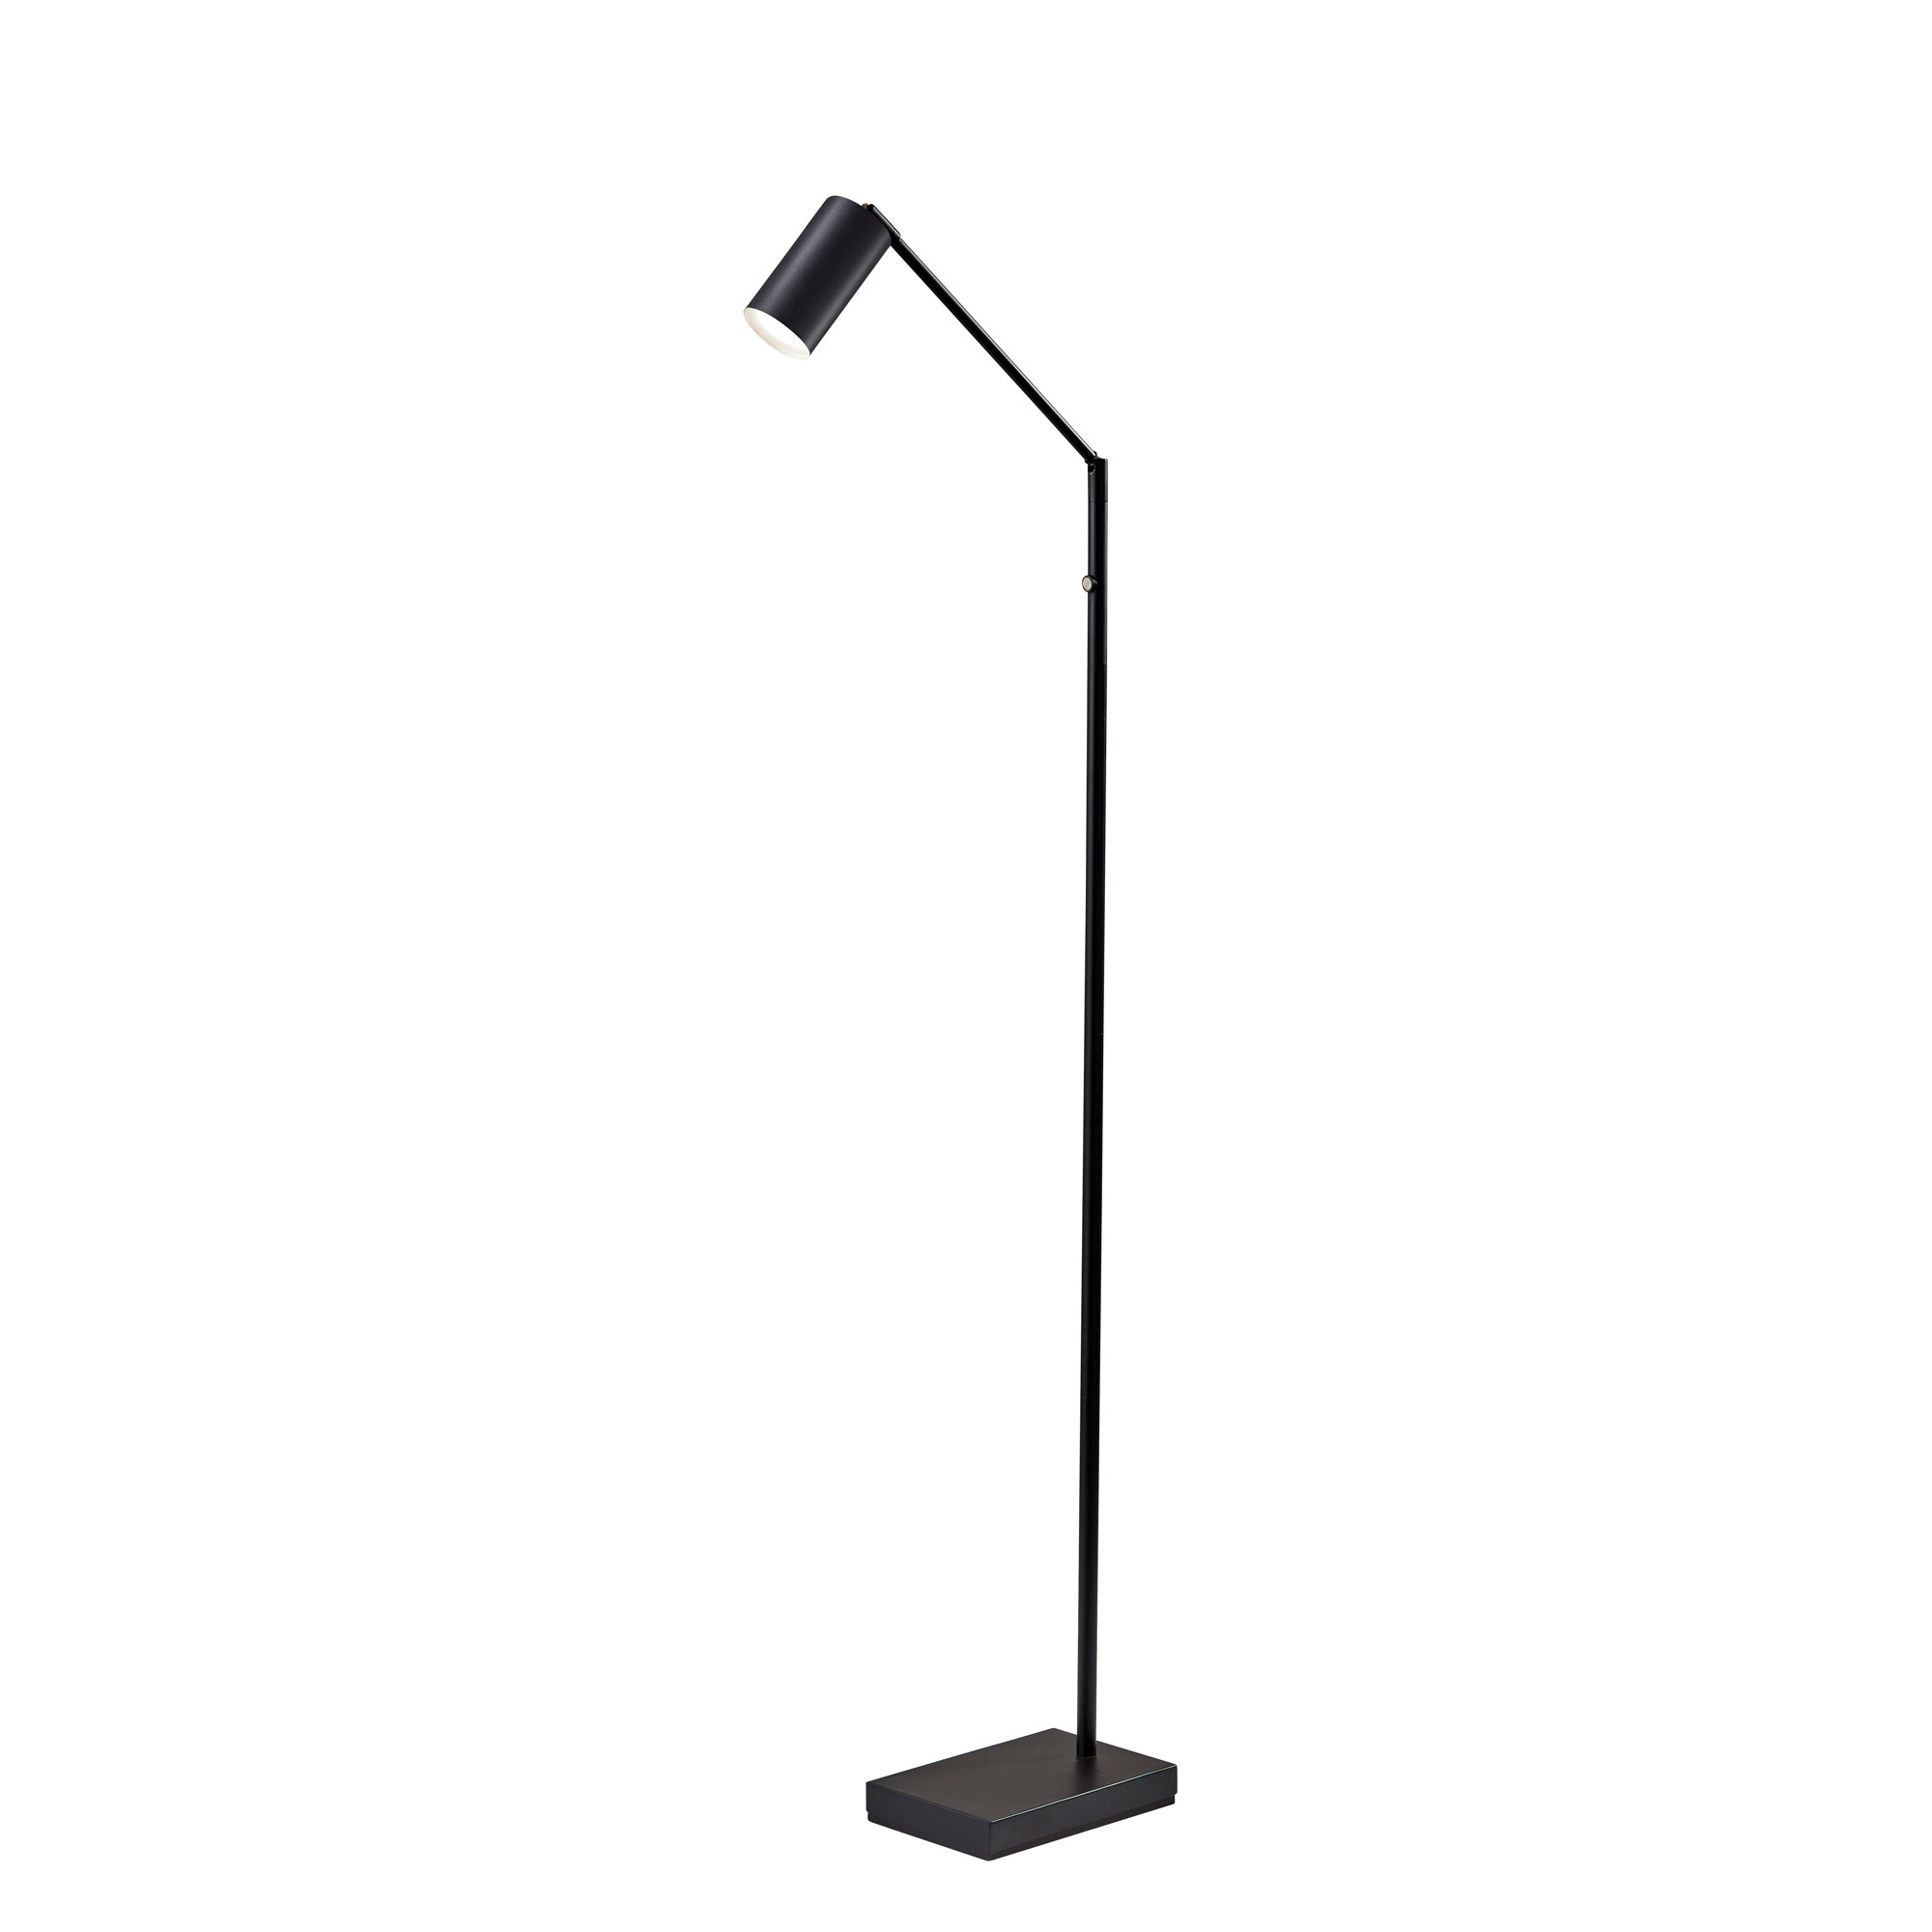 Image of: Colby Floor Lamp By Adesso Corp 4275 01